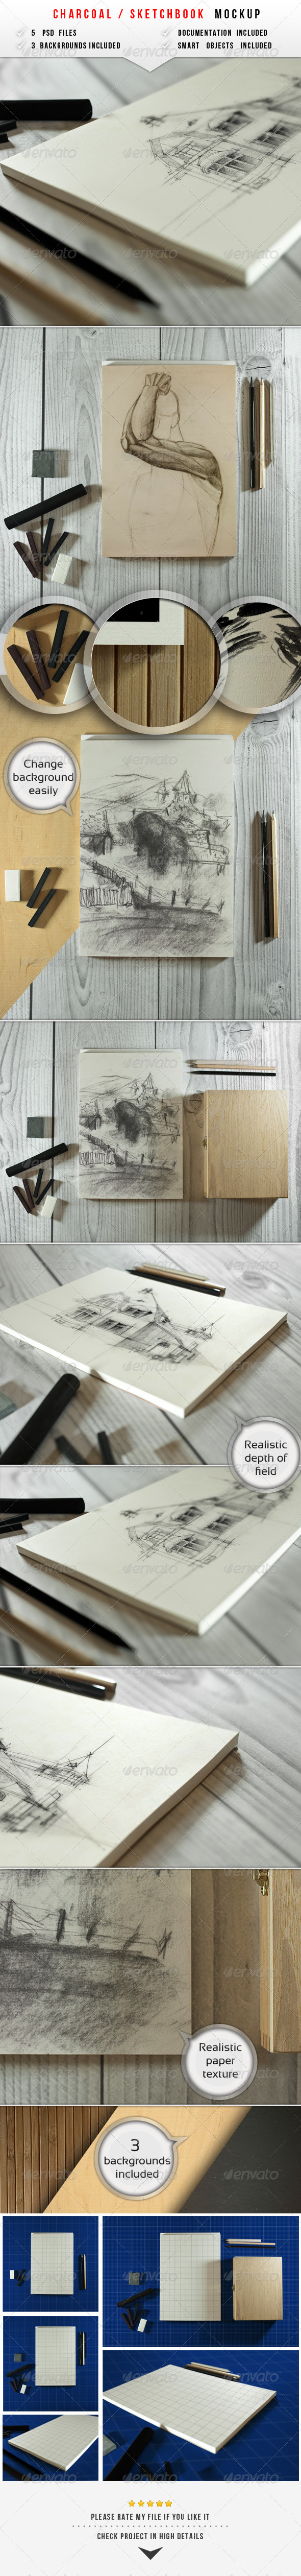 Sketch & Charcoal Mockup - Miscellaneous Product Mock-Ups